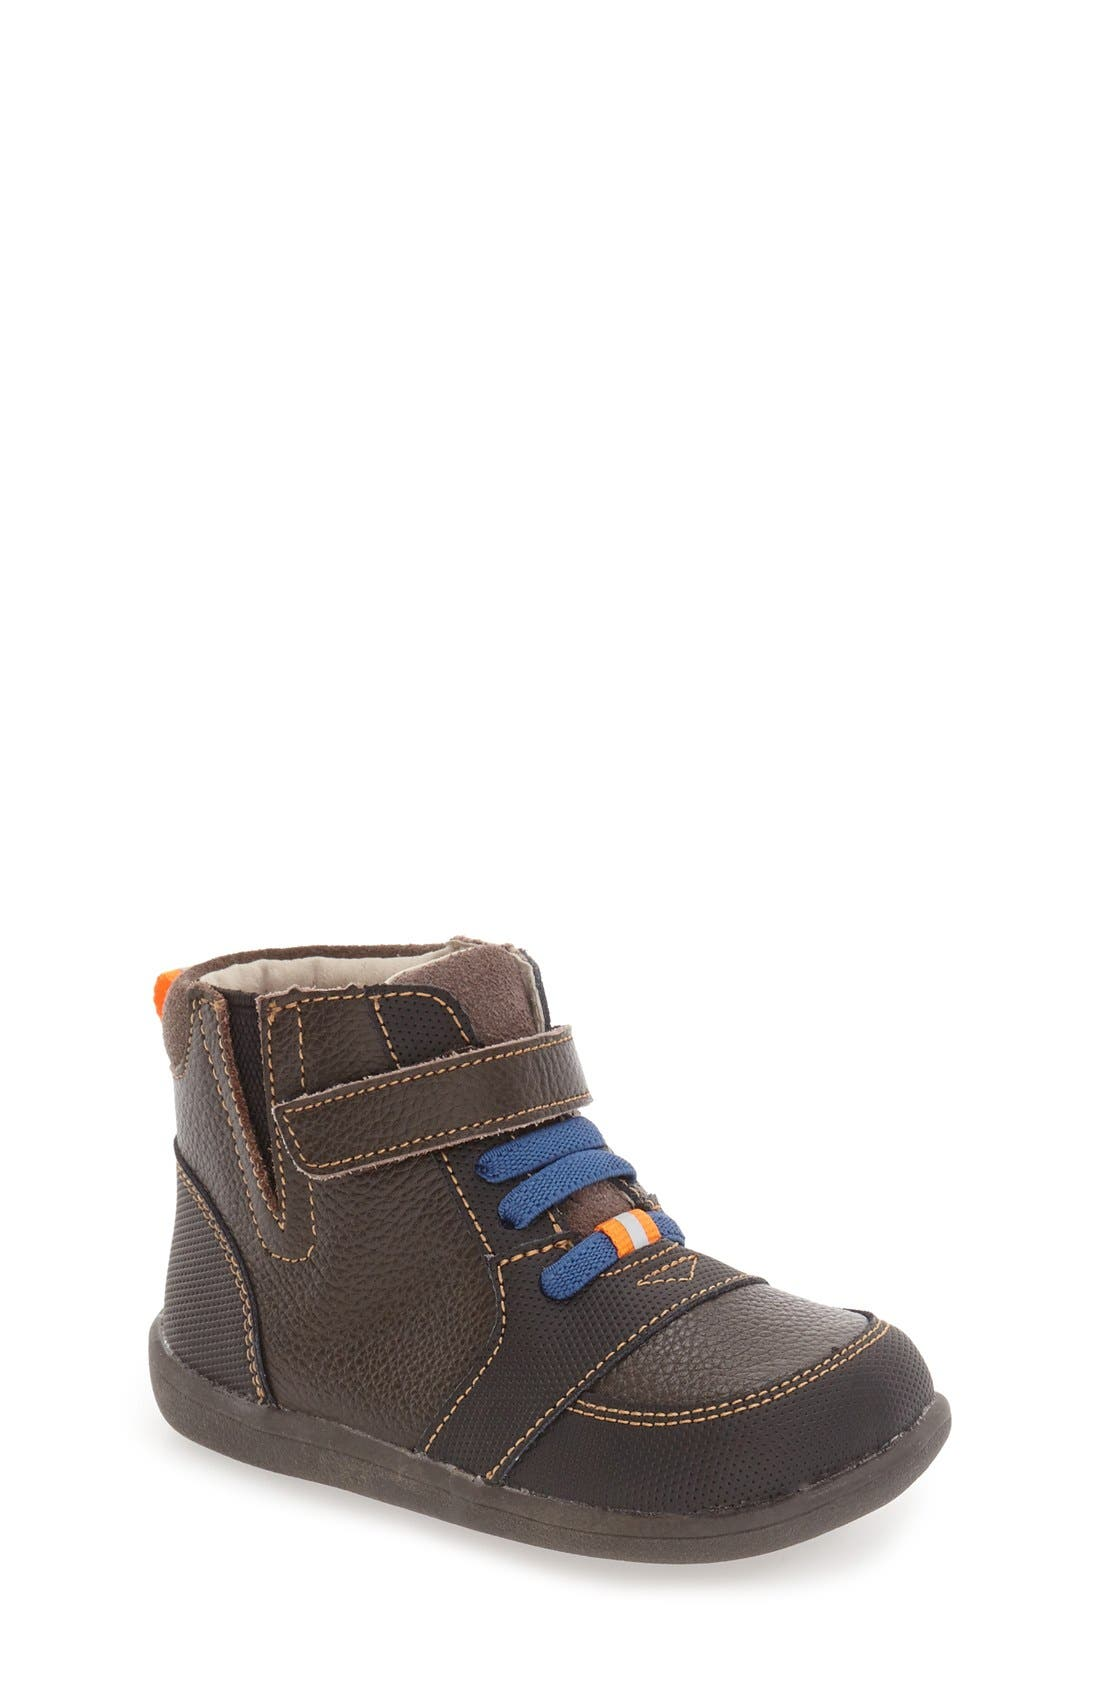 See Kai Run 'Ian' Boot (Baby, Walker & Toddler)